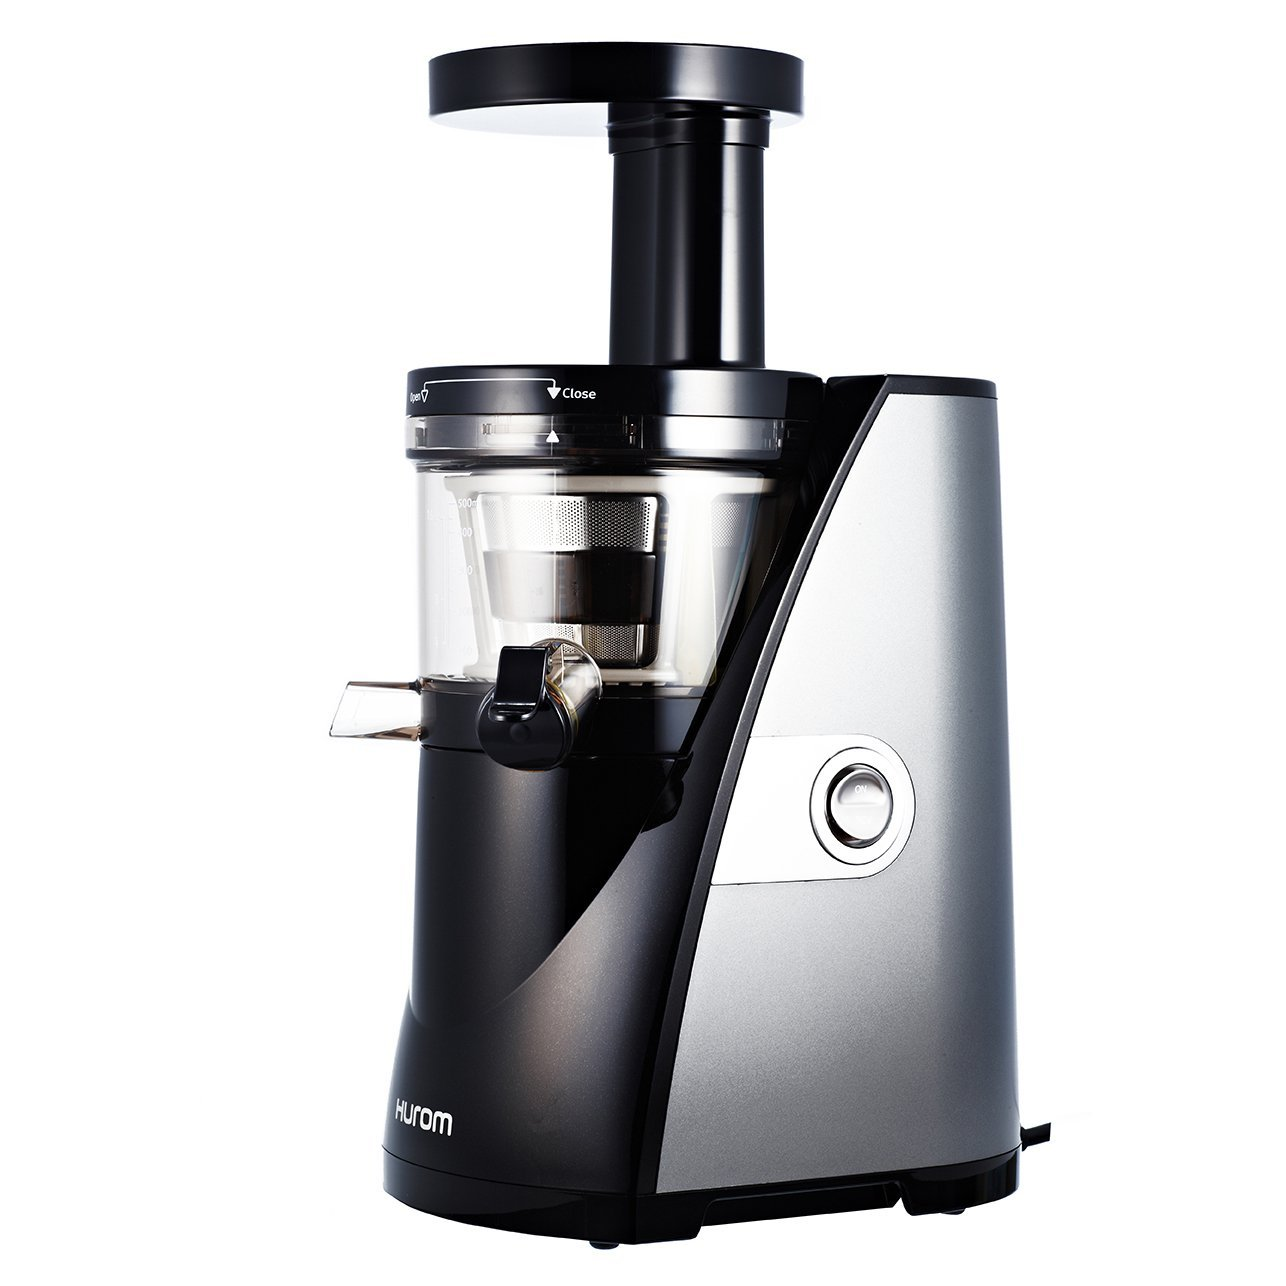 Compare Hurom Slow Juicer Models : 5 Best Hurom Juicer Reviews UPDATED: 2018 The Home Savant